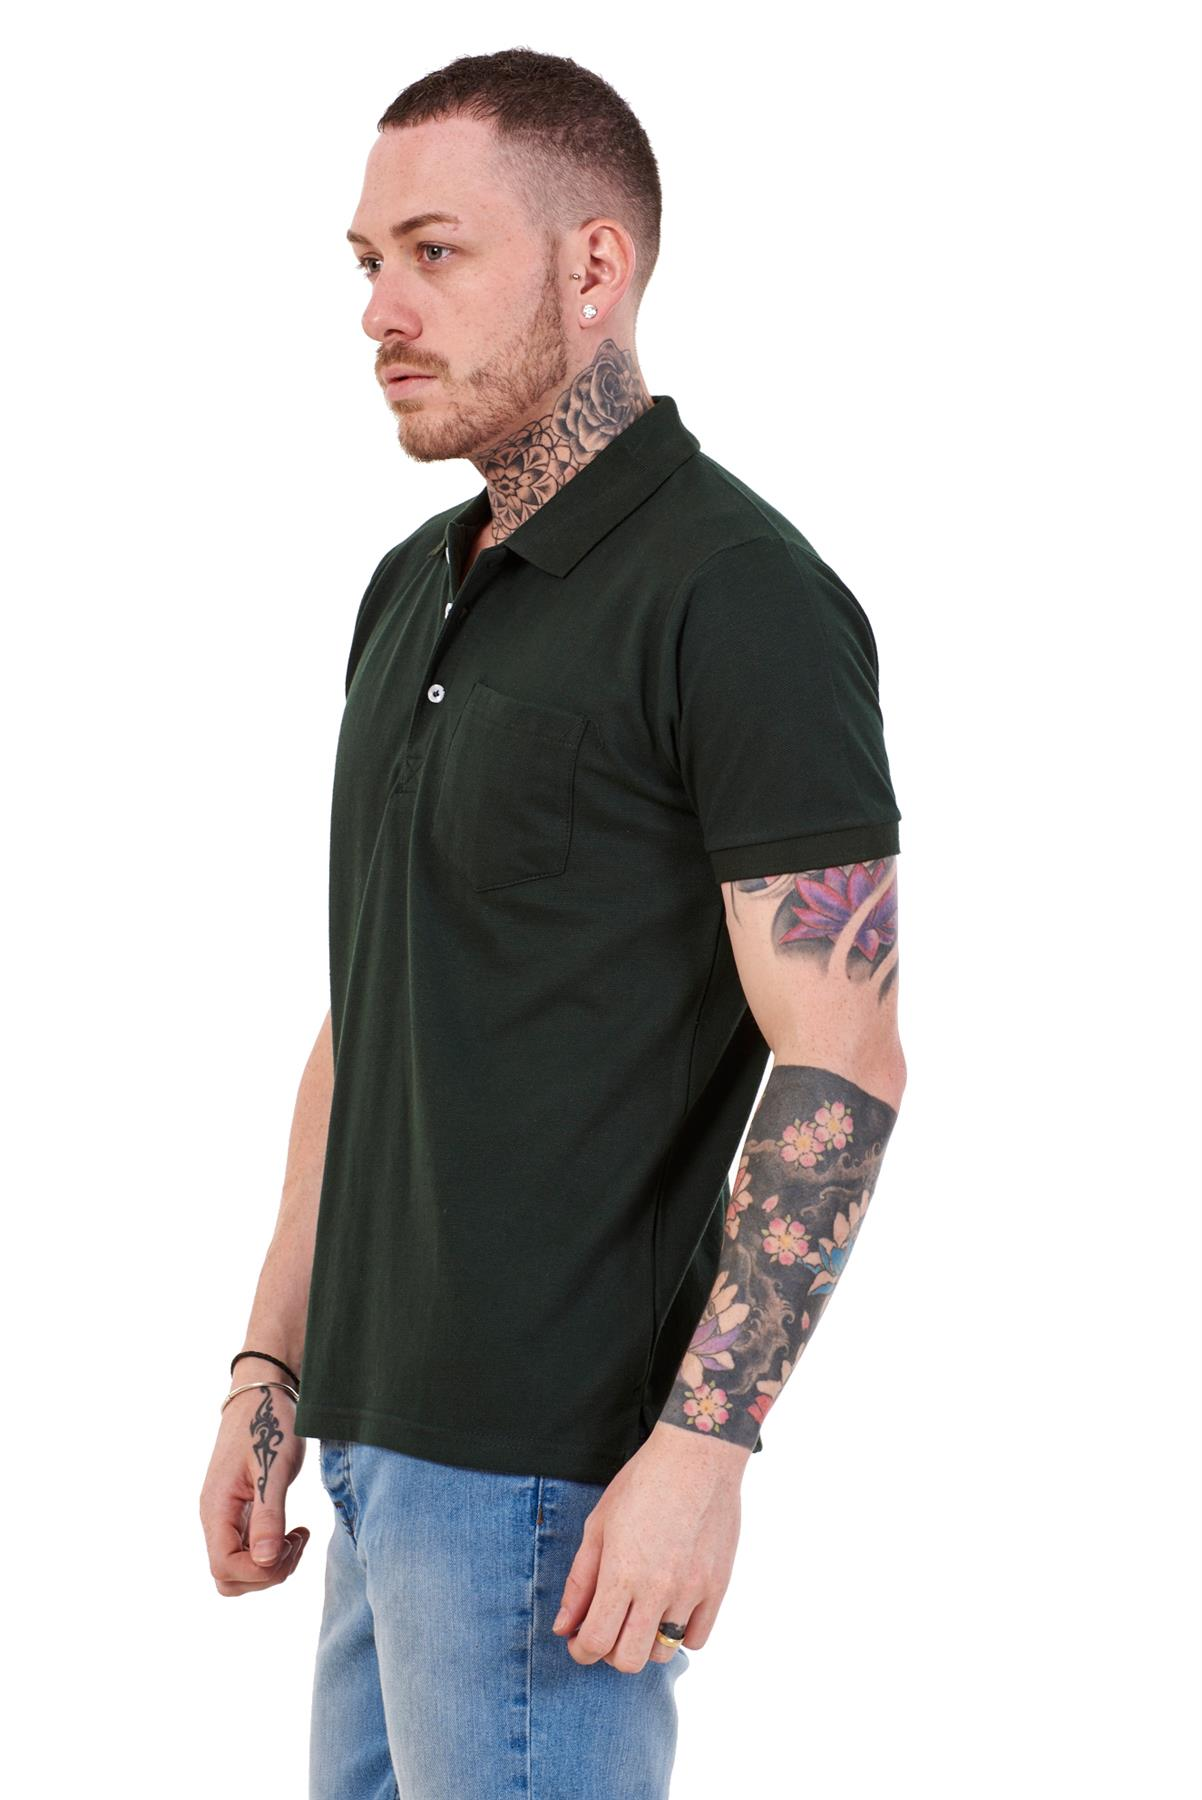 Mens-Cotton-T-Shirts-Regular-fit-Plain-Polo-Pocket-Casual-Formal-Shirt-Top-M-XXL thumbnail 16